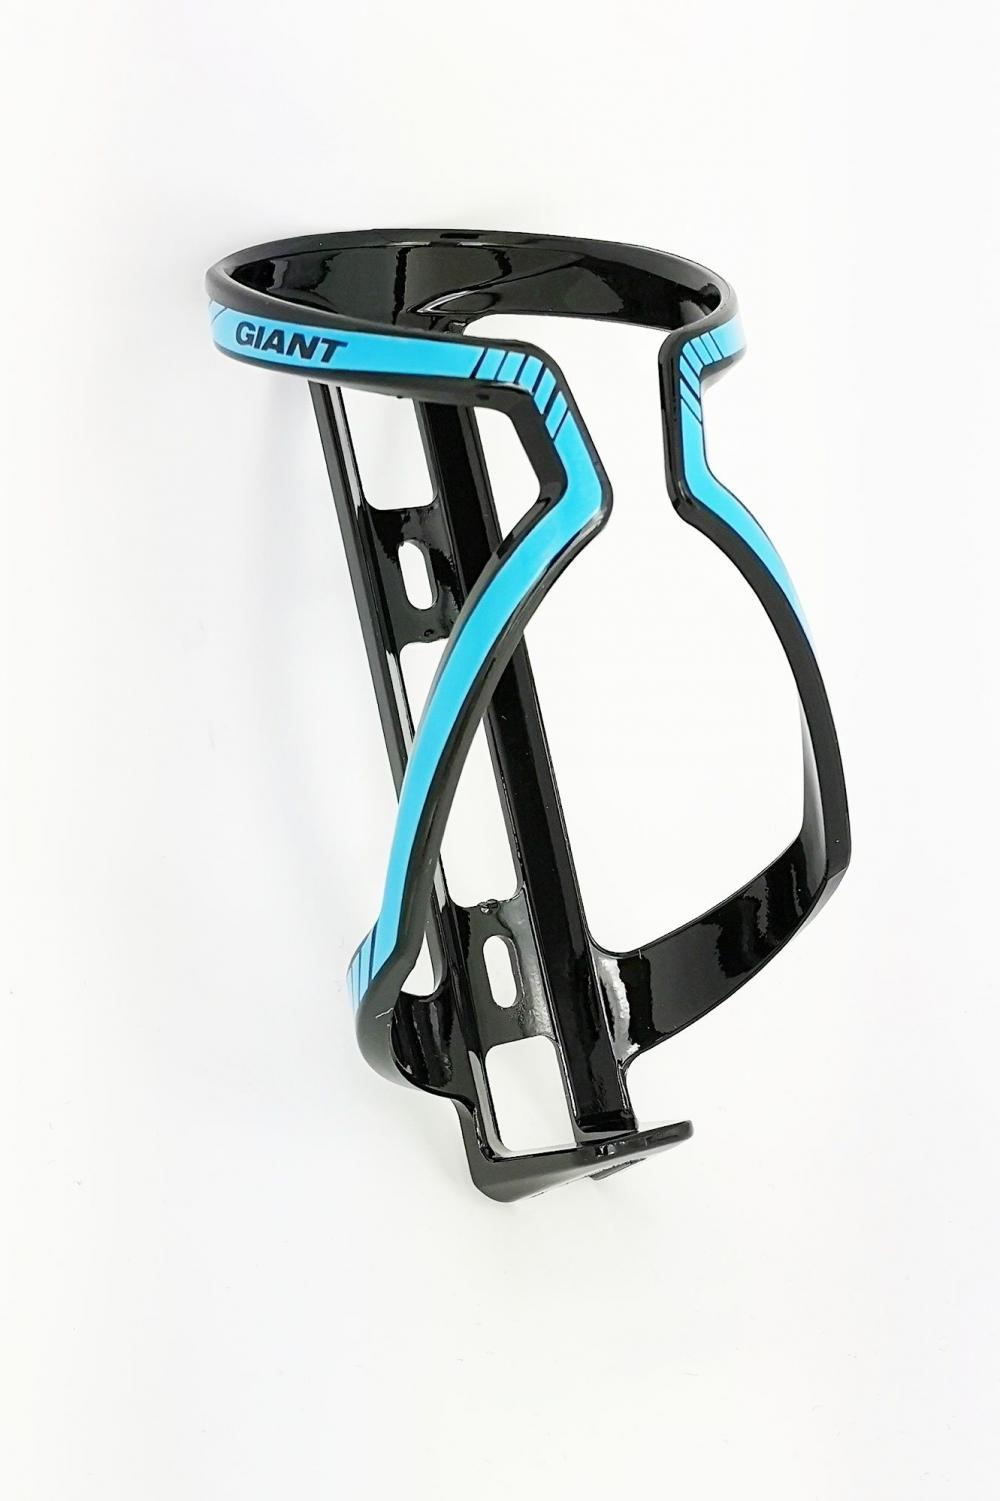 NOSILEC BIDONA GIANT AIRWAY SPORT MATT BLACK/ GLOSS BLUE